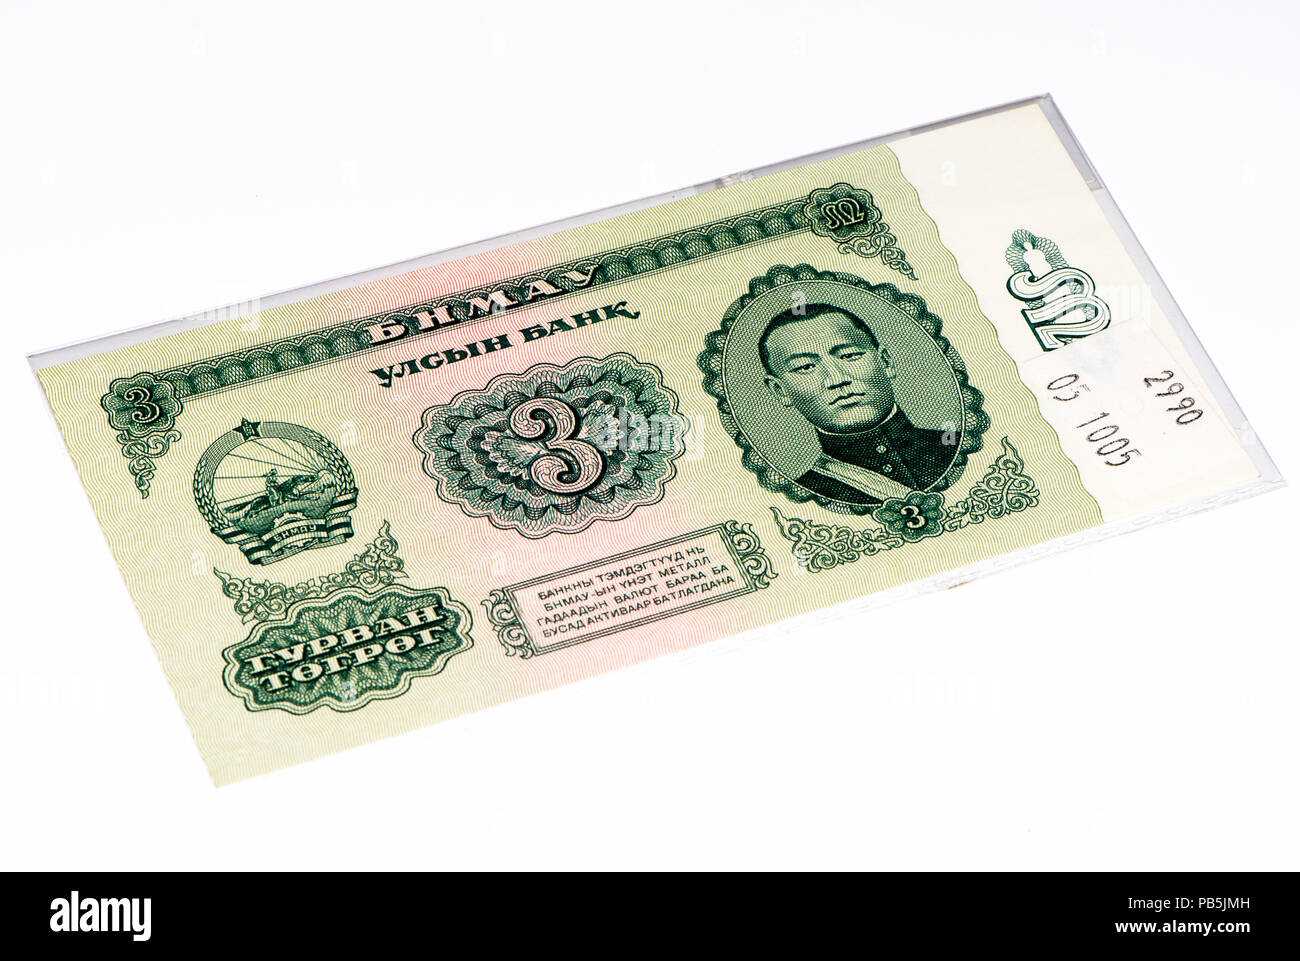 5 togrog bank note. Togrog is the national currency of Mongolia - Stock Image